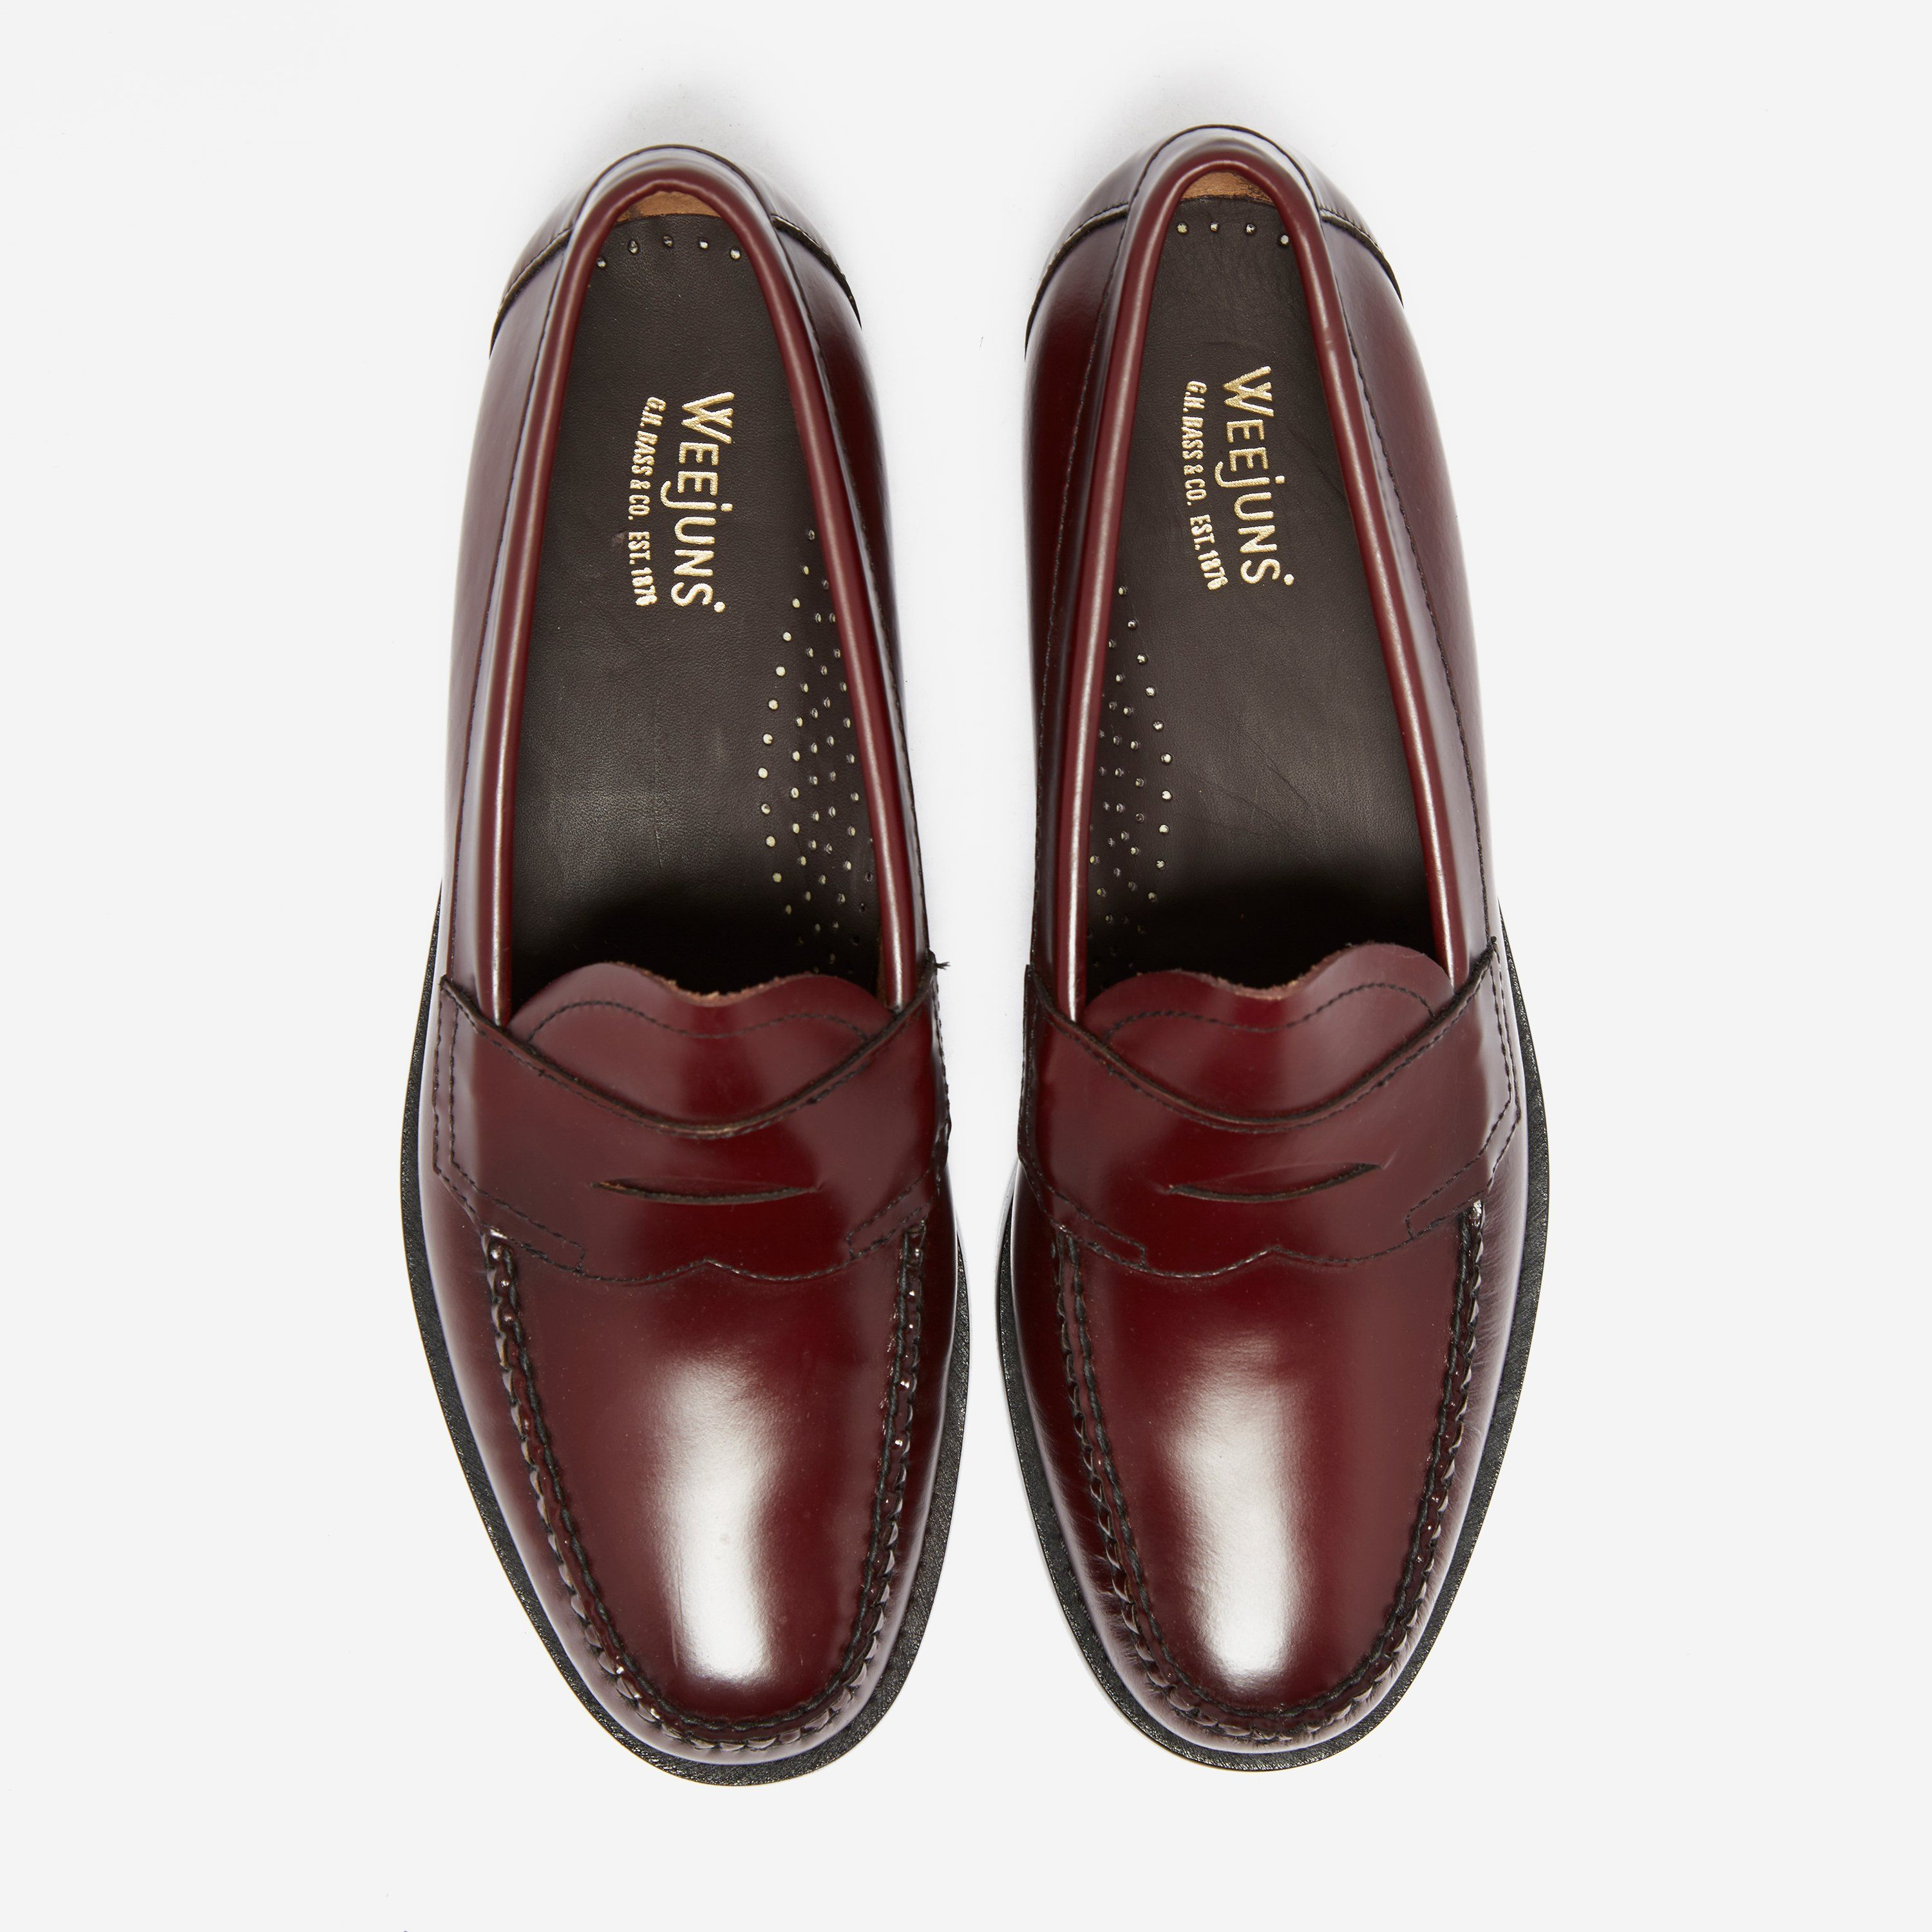 G.H. Bass & Co. Weejun Logan Penny Loafer